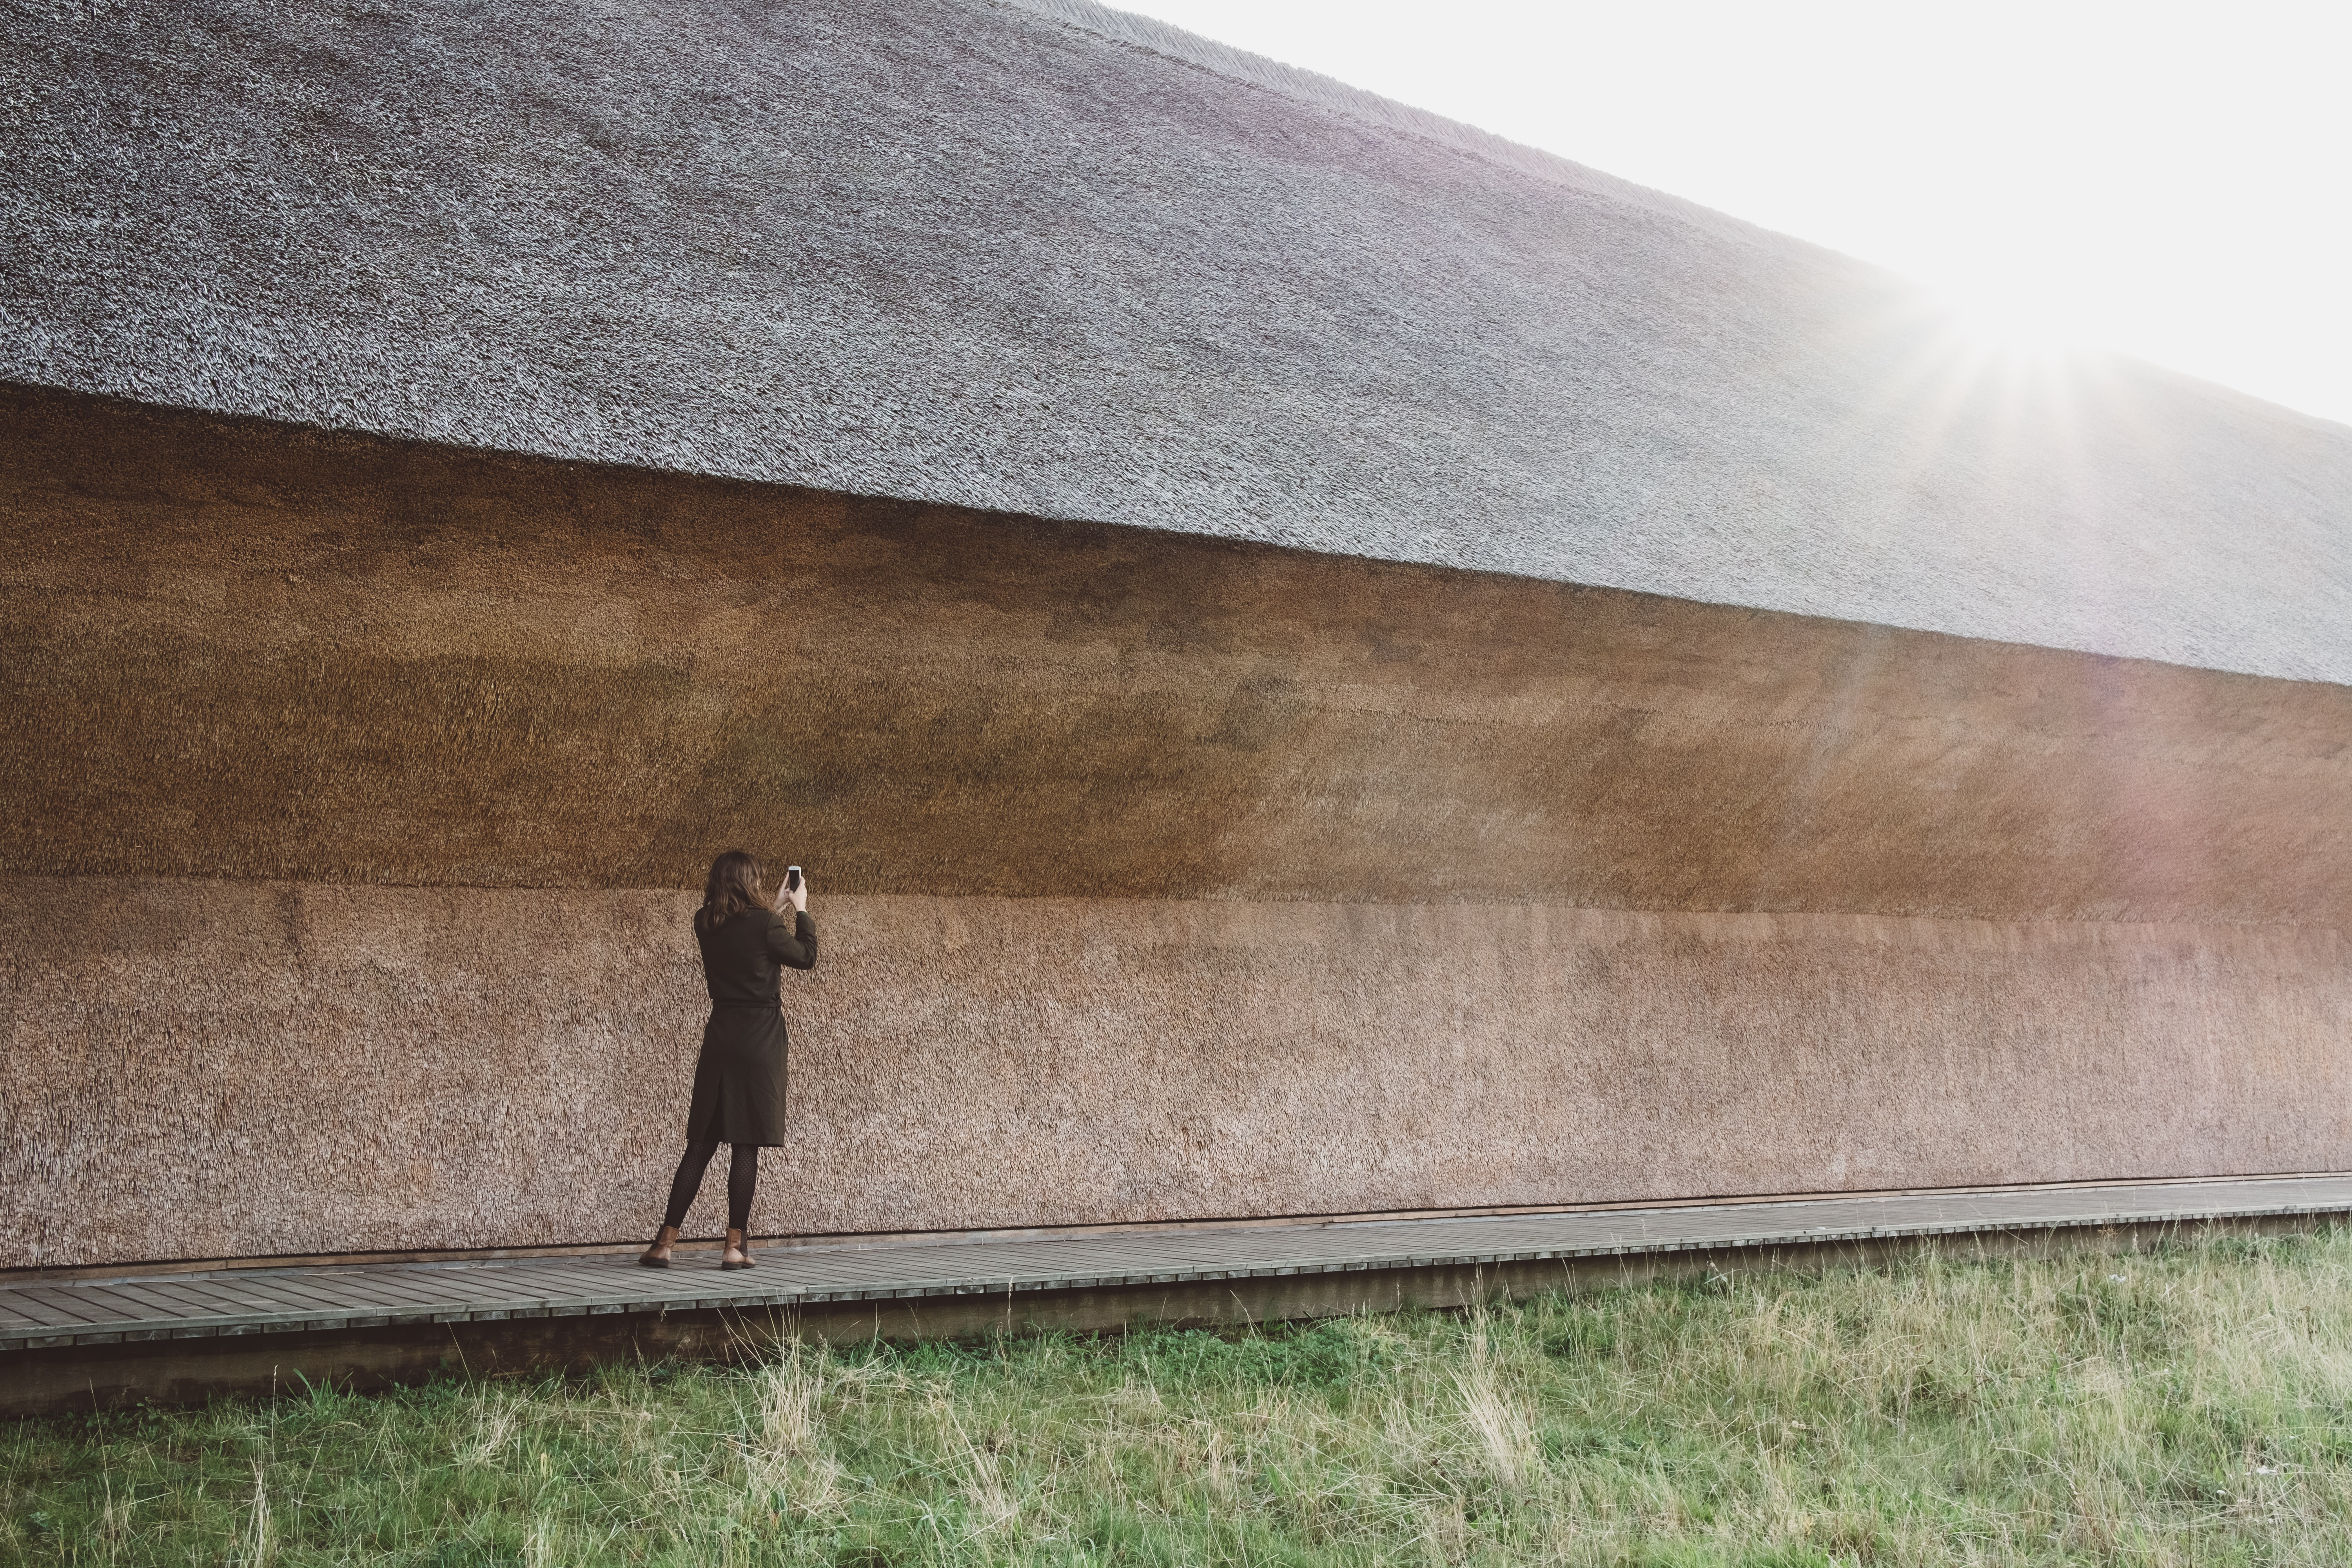 woman taking photo nearby grown concrete building